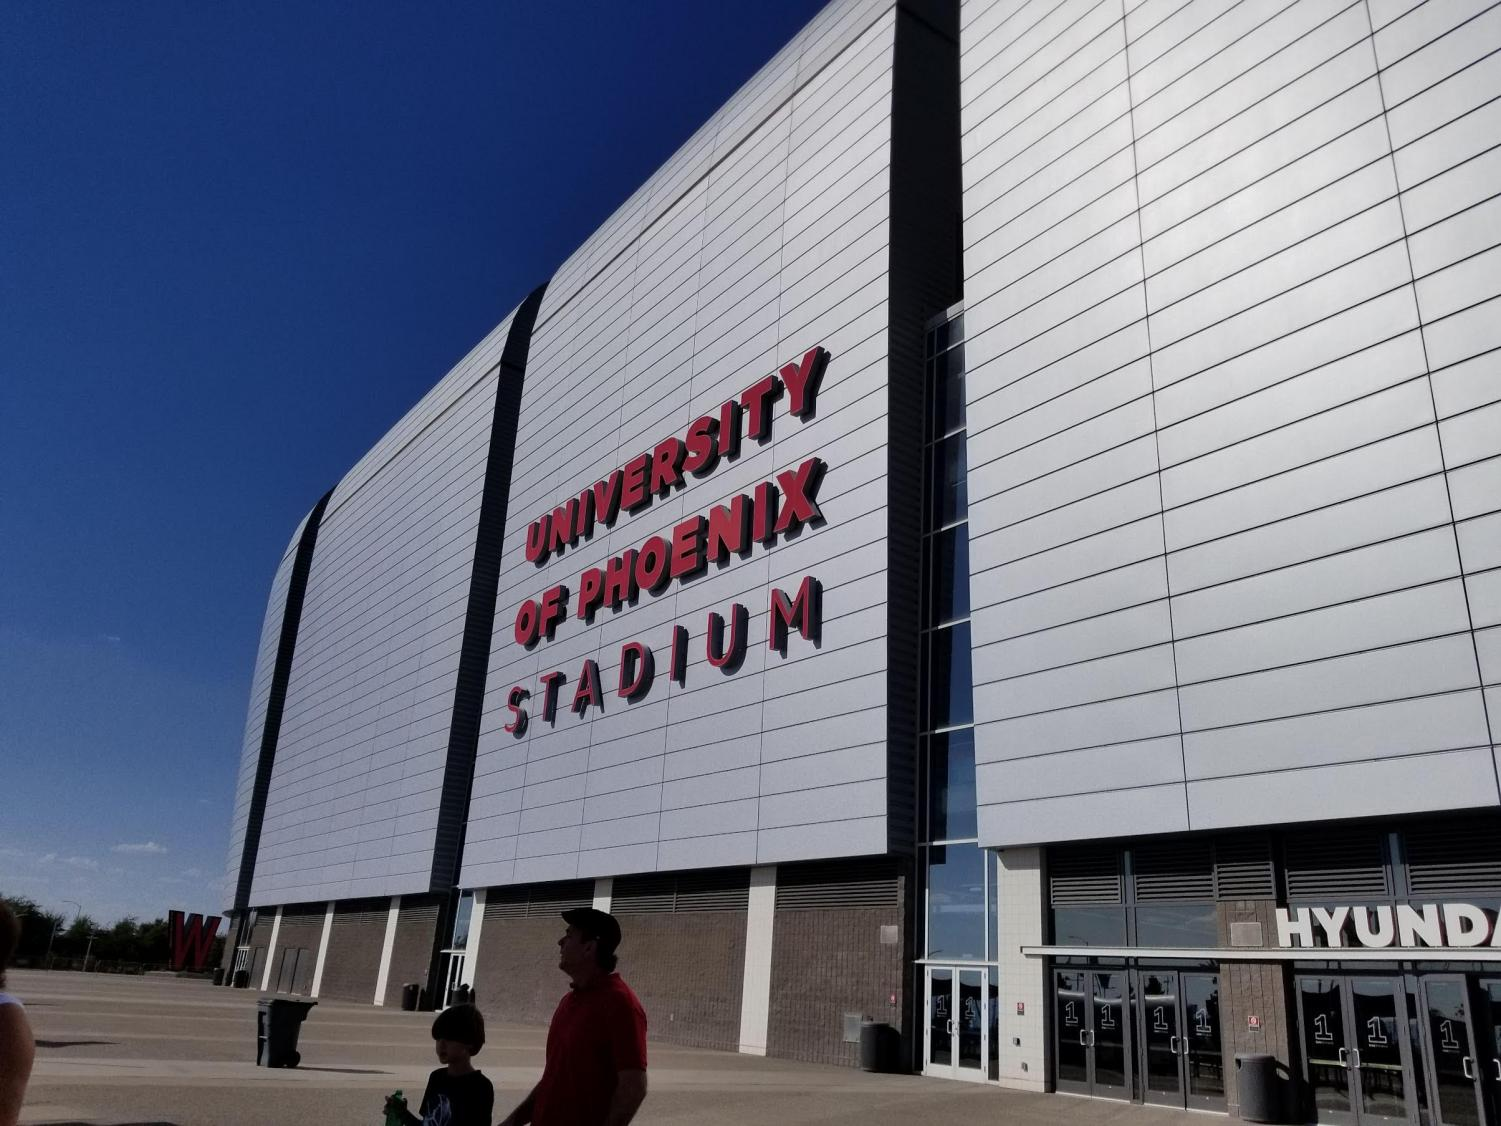 Outside of University of Phoenix Stadium.